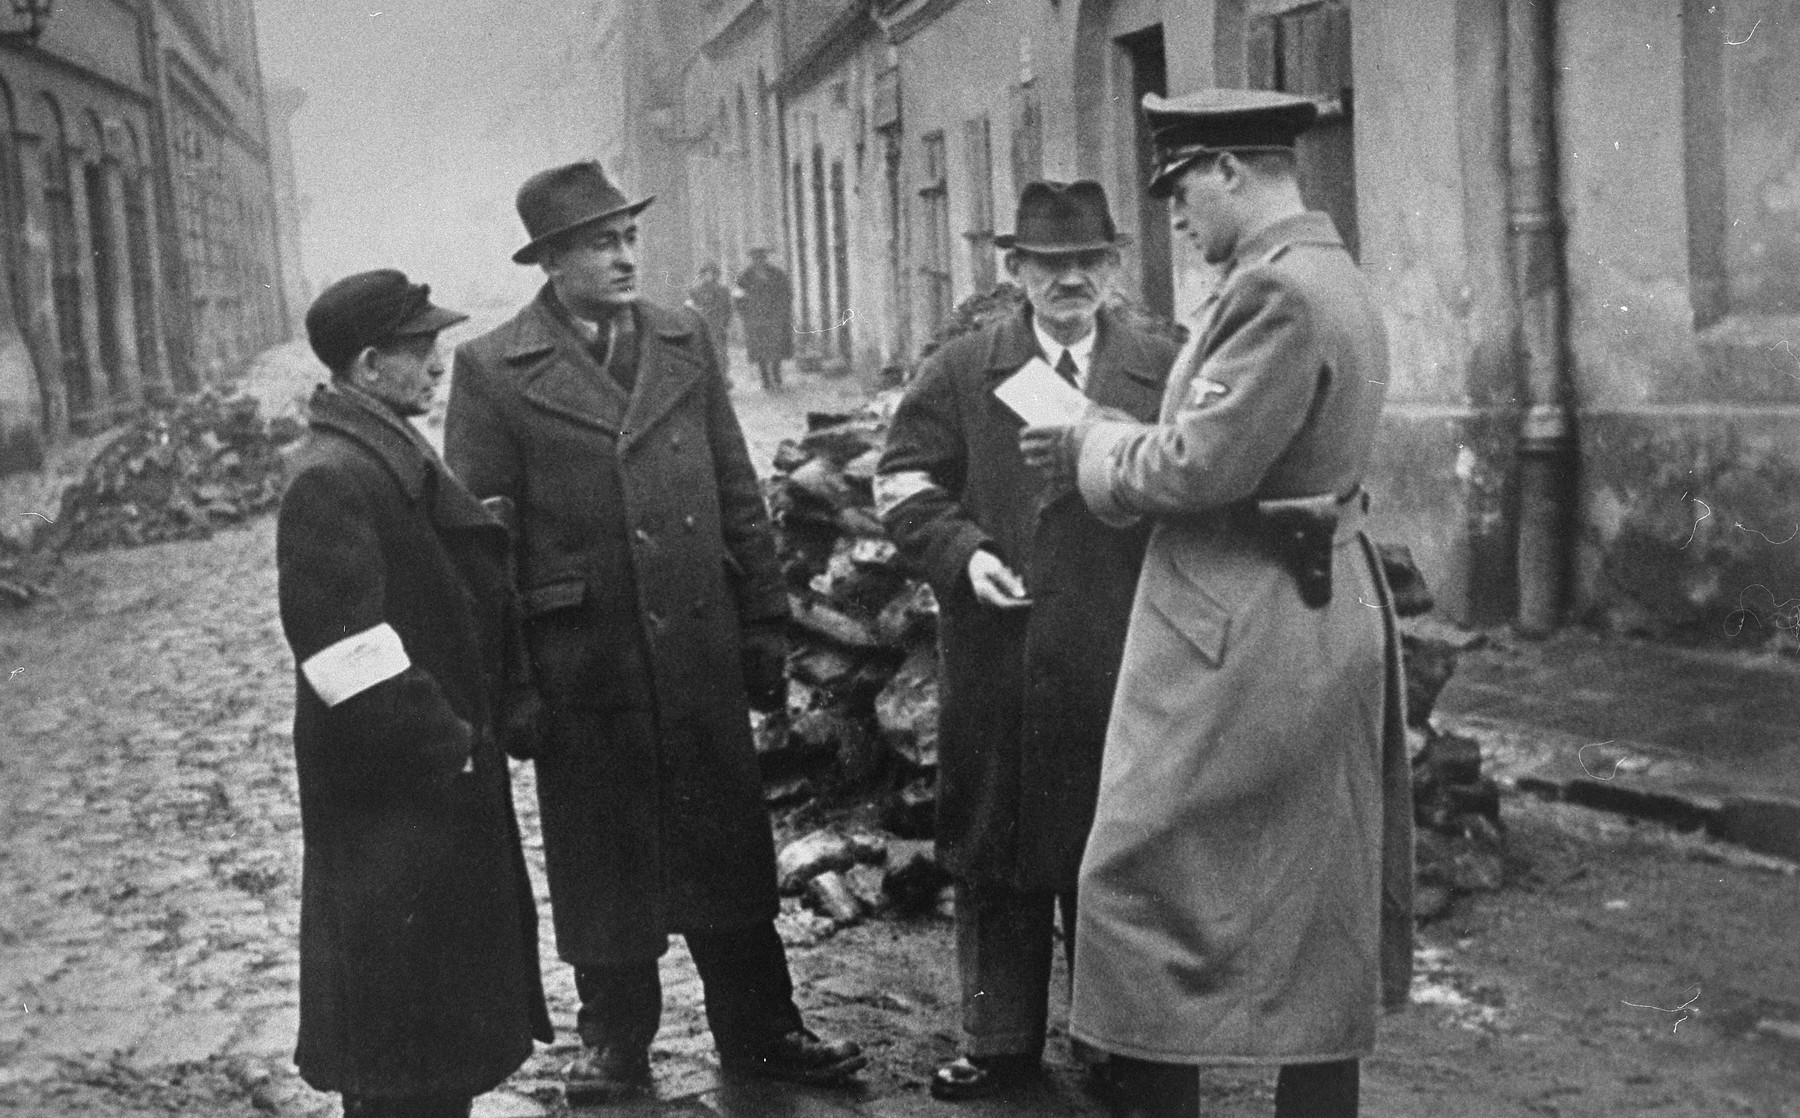 A German policeman checks the identification papers of Jews in the Krakow ghetto.